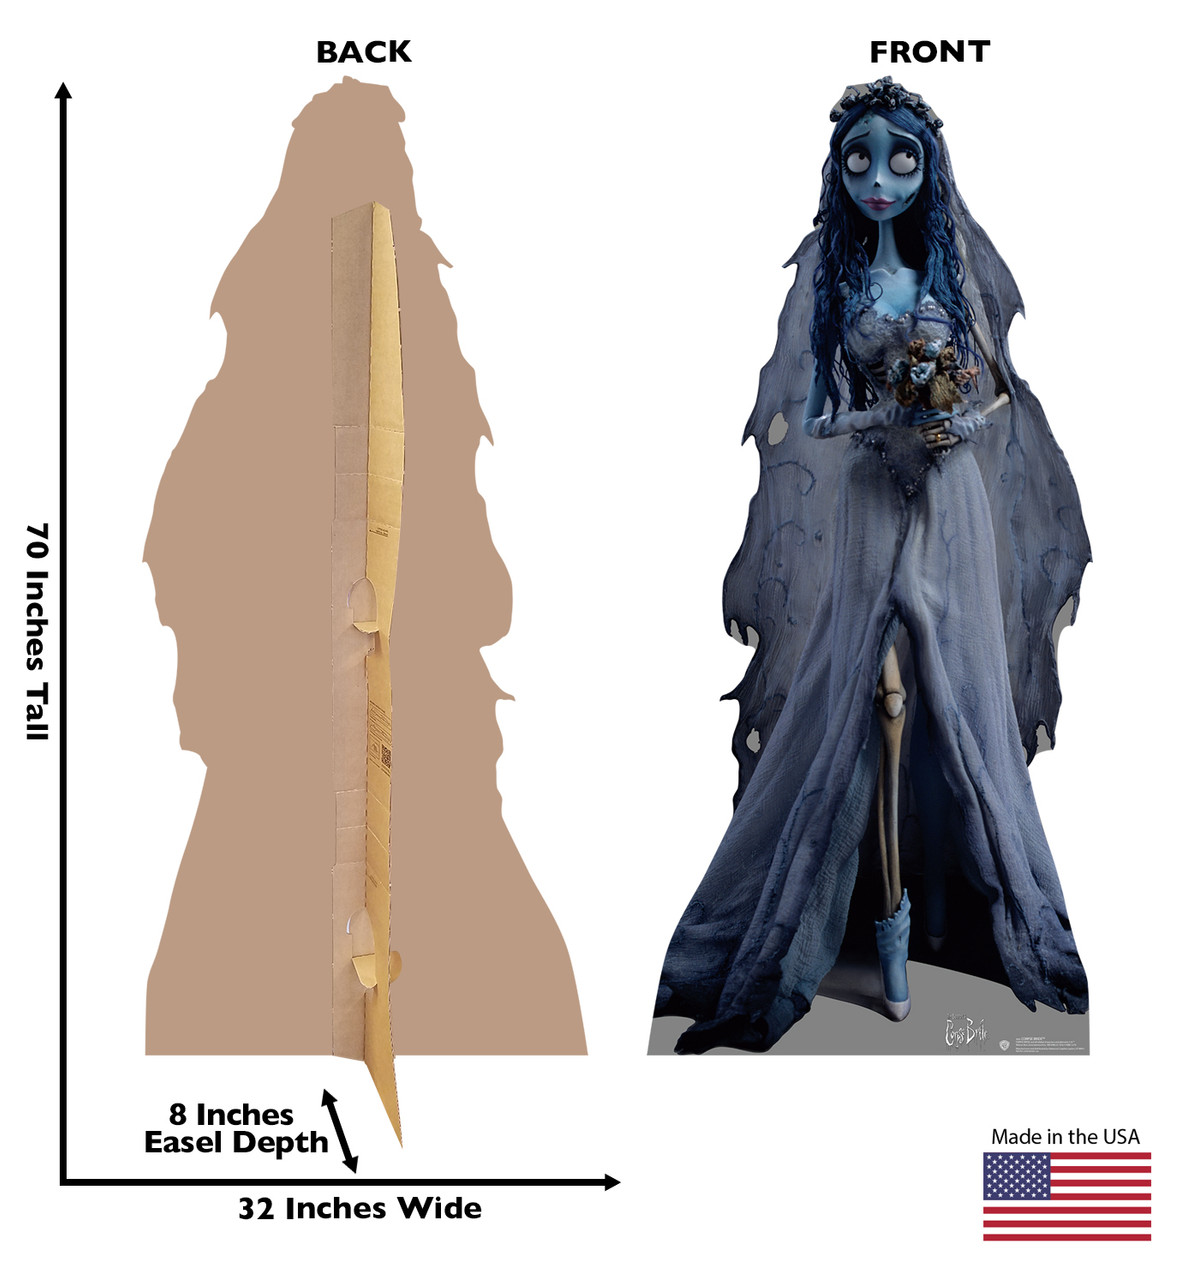 Life-size cardboard standee of The Corpse Bride with back and front dimensions.